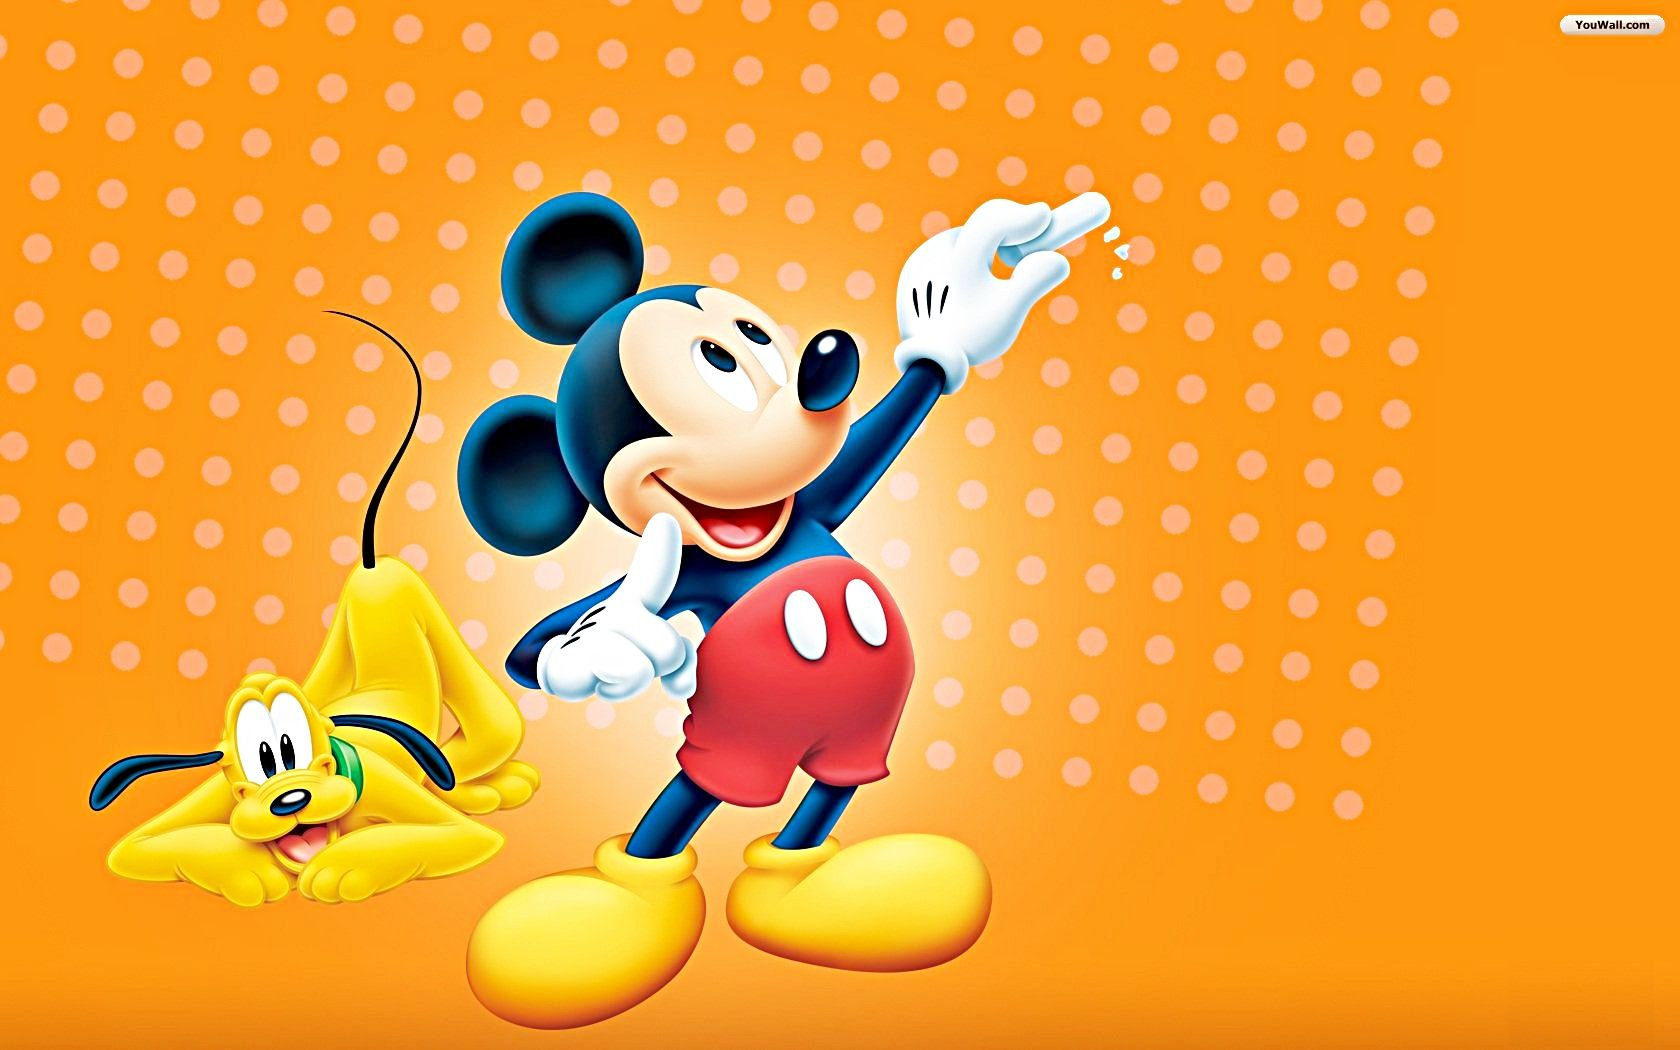 Walt Disney Wallpaper Of Pluto And Mickey Mouse HD Background Photos Wallpapers